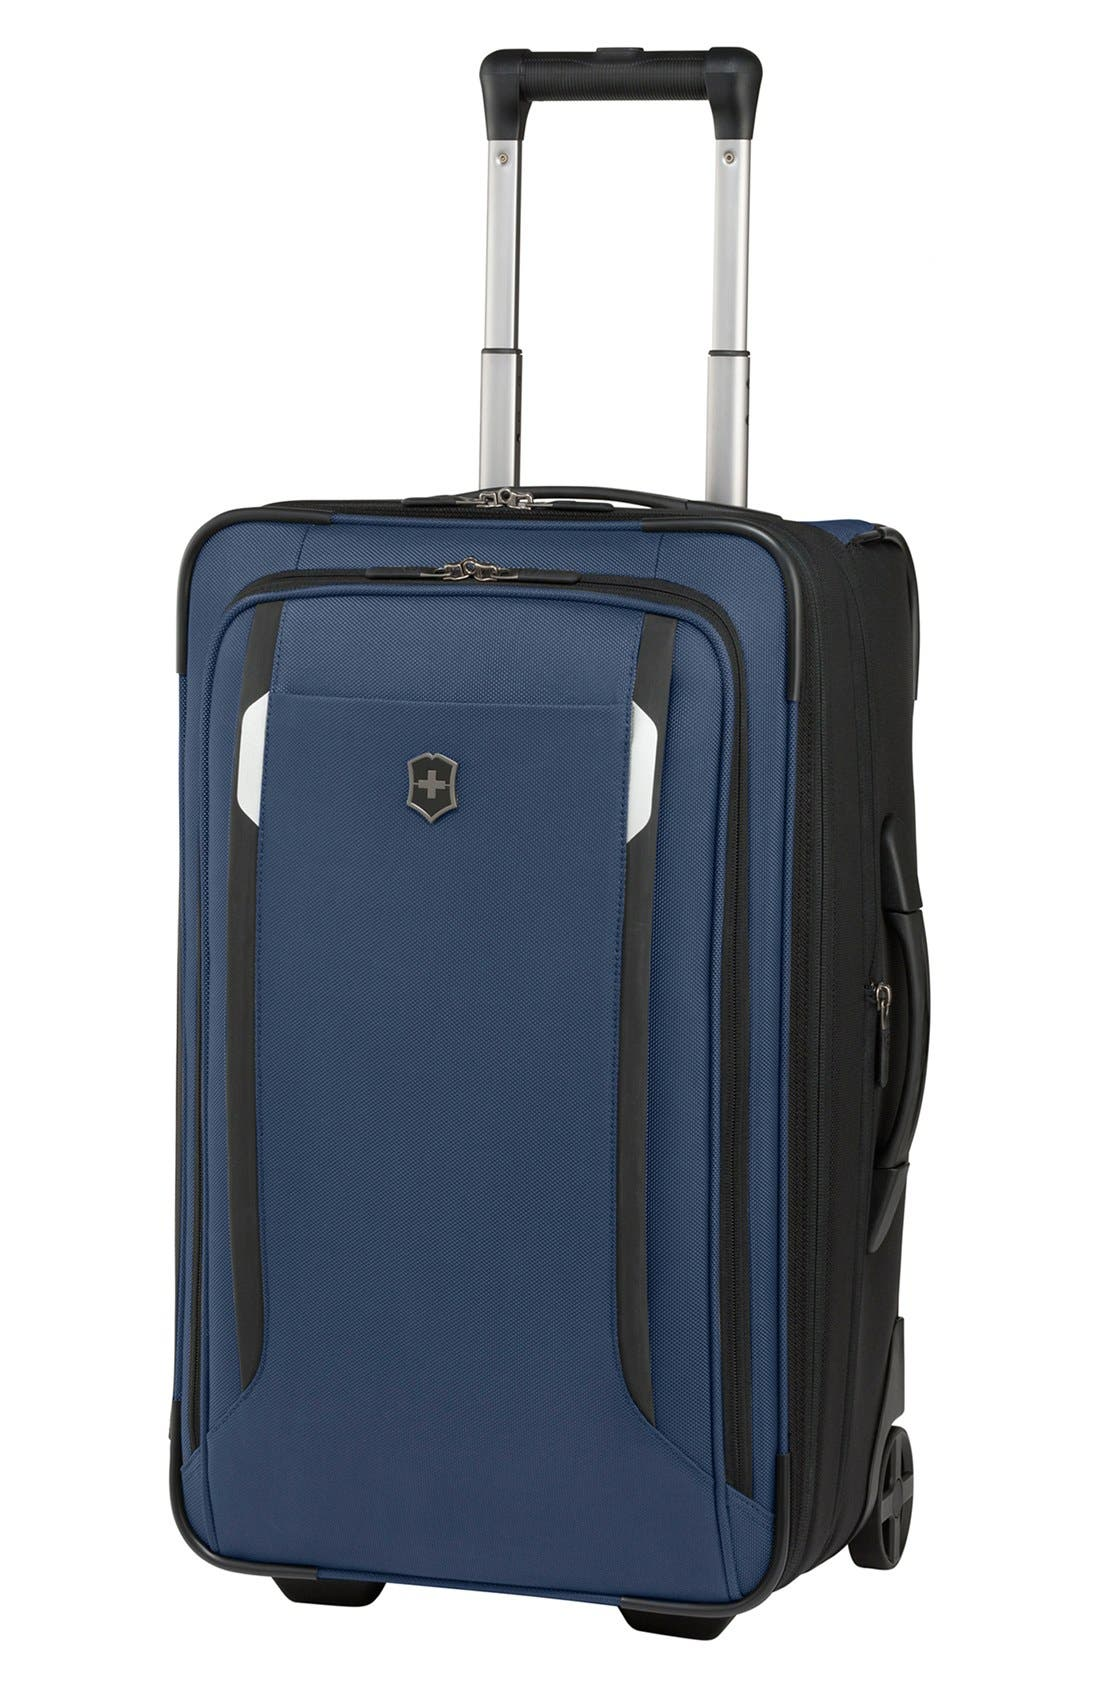 WT 5.0 Wheeled 22-Inch Carry-On,                         Main,                         color, 420